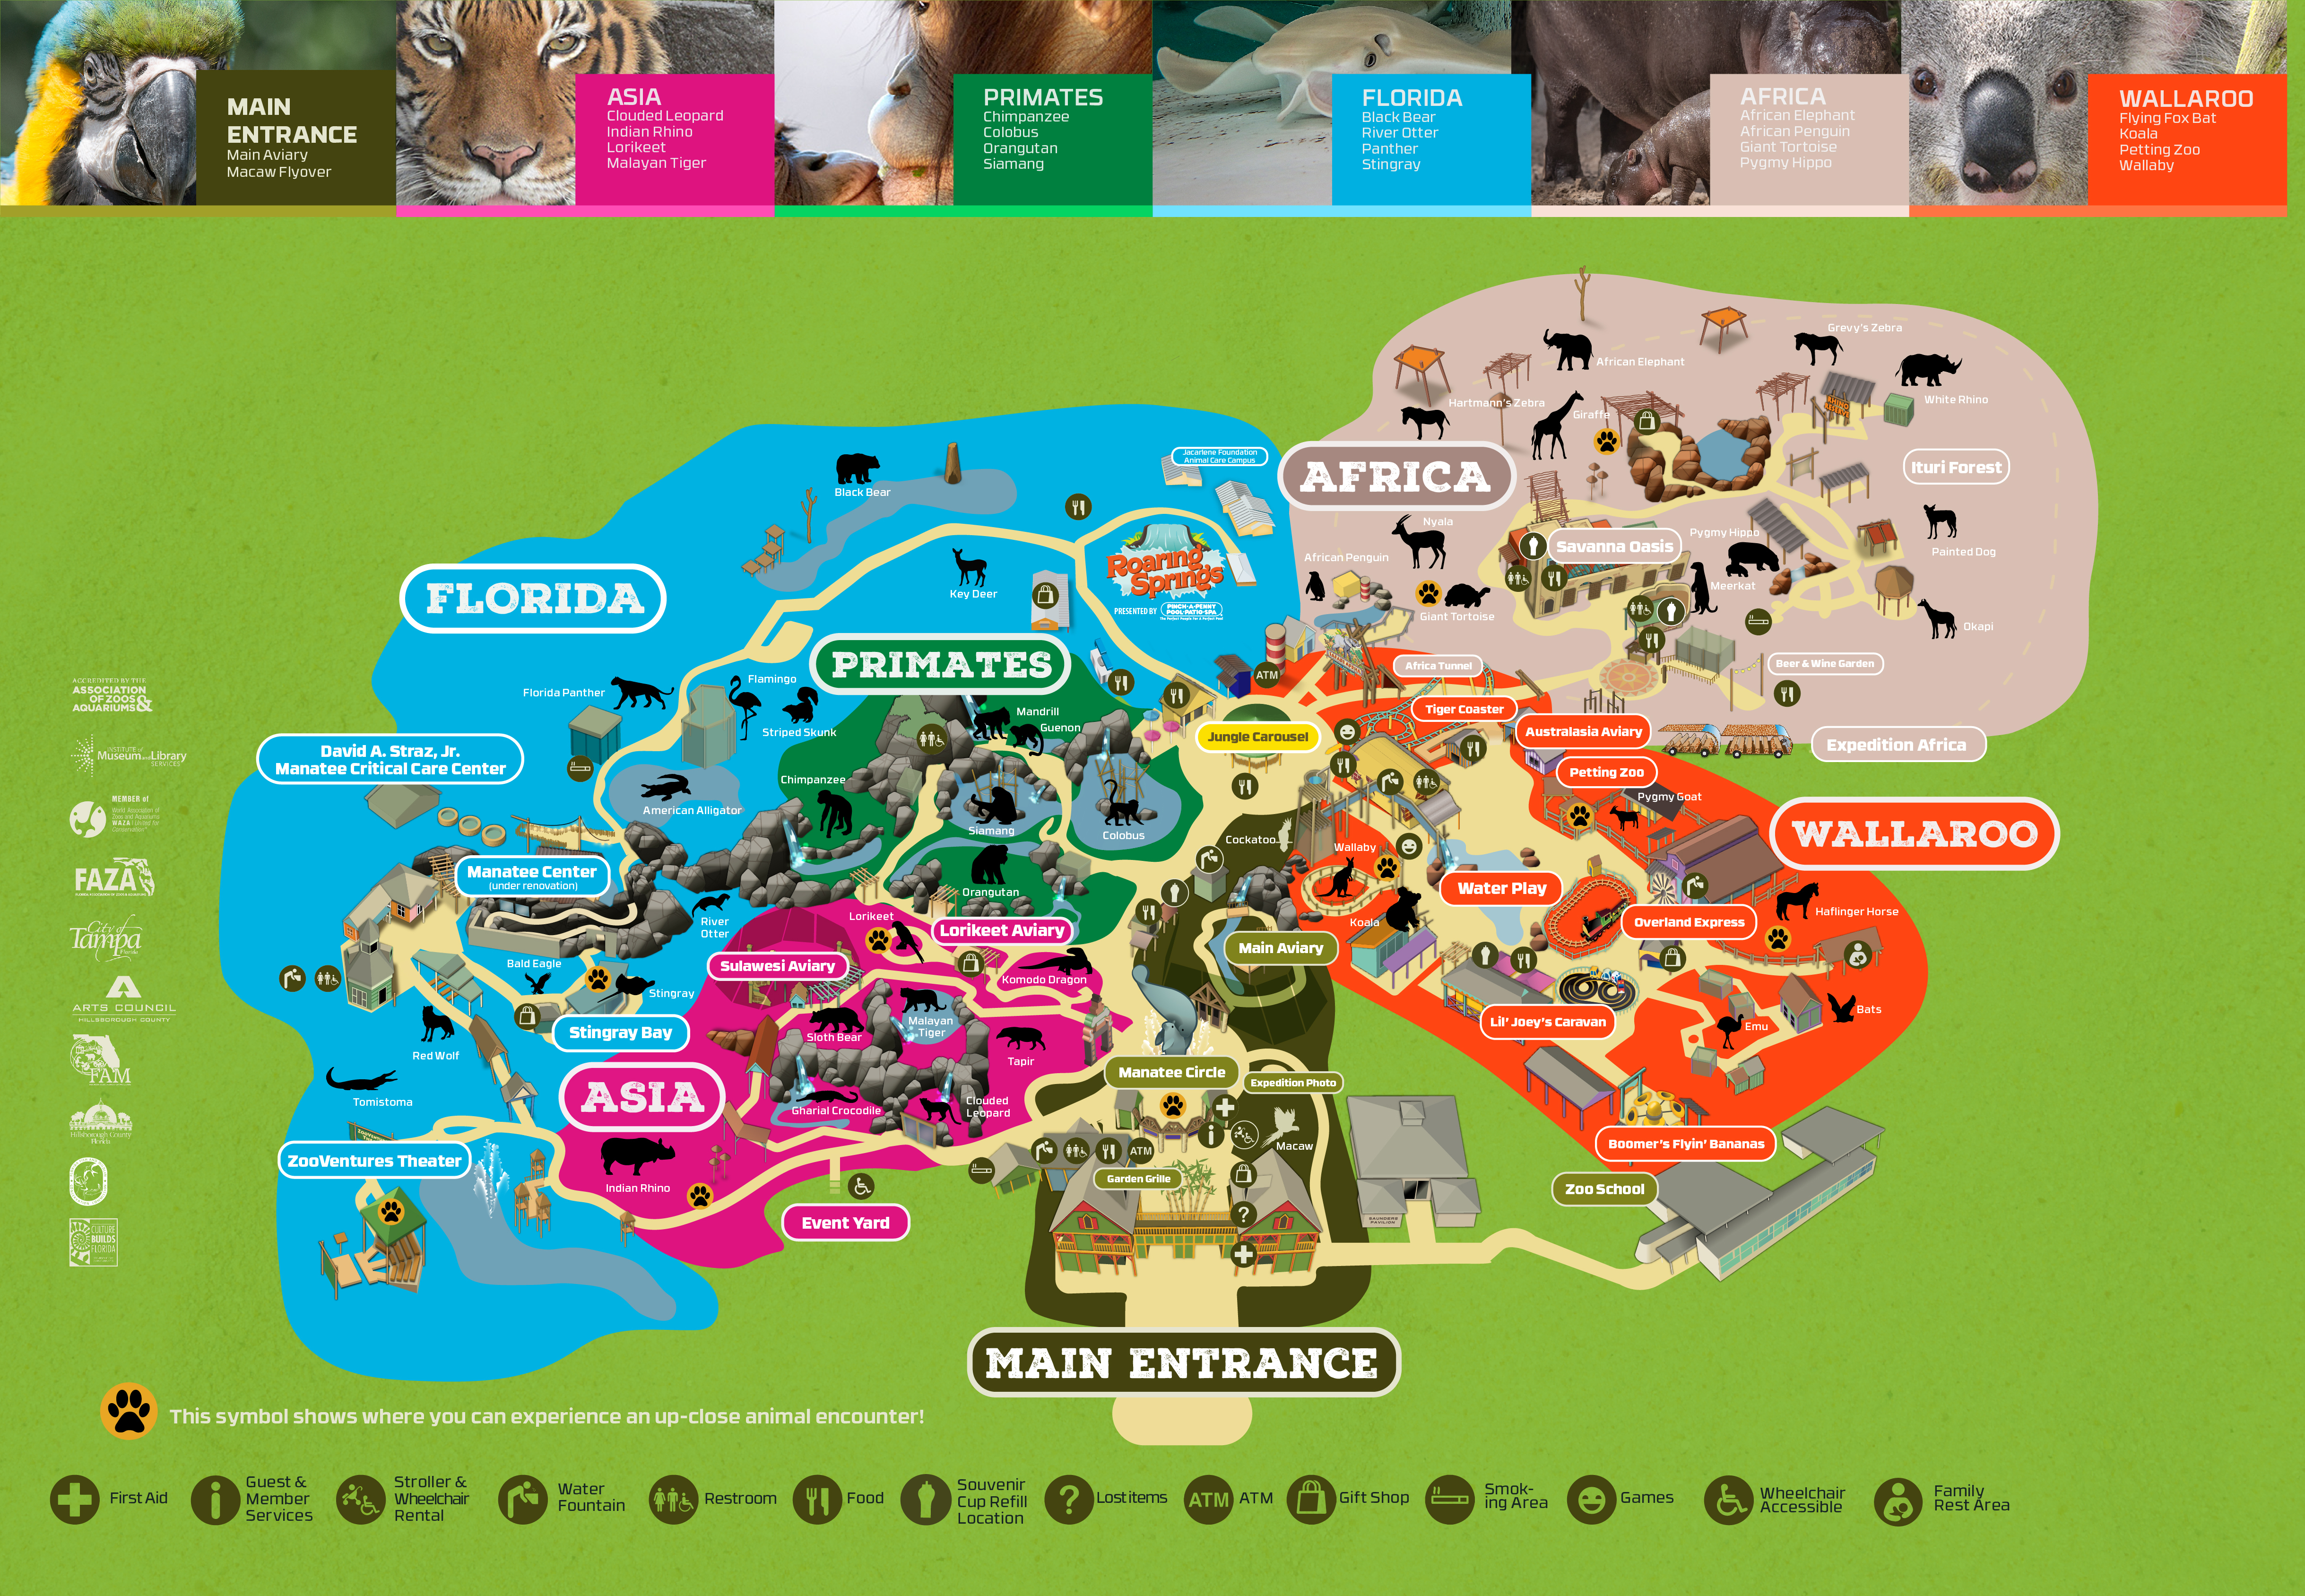 Zootampa At Lowry Park - Central Florida Zoo Map